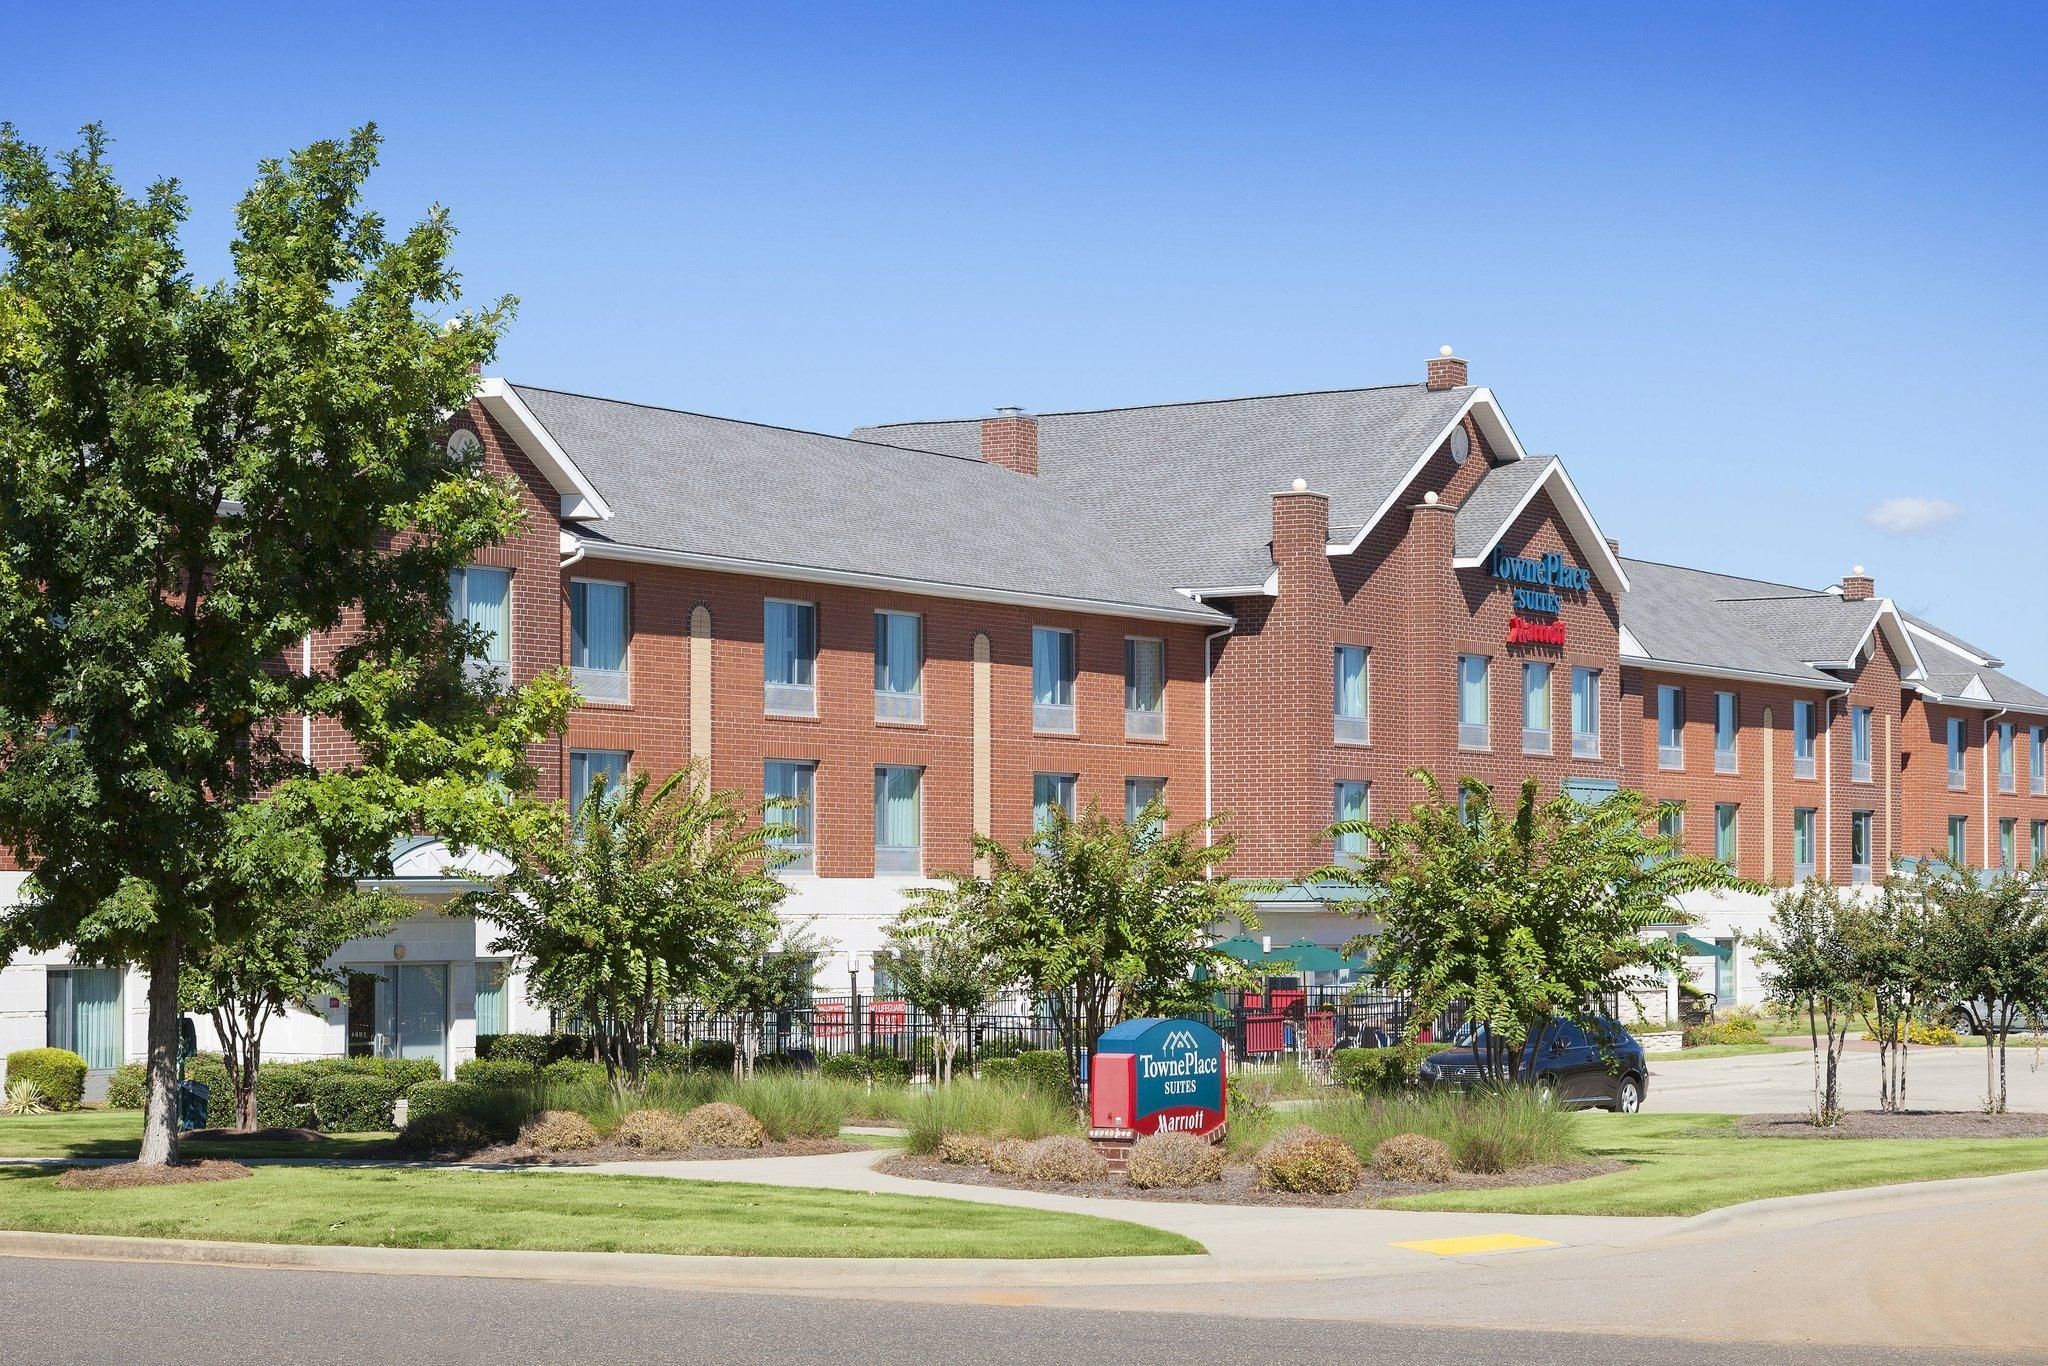 TownePlace Suites Rock Hill, York